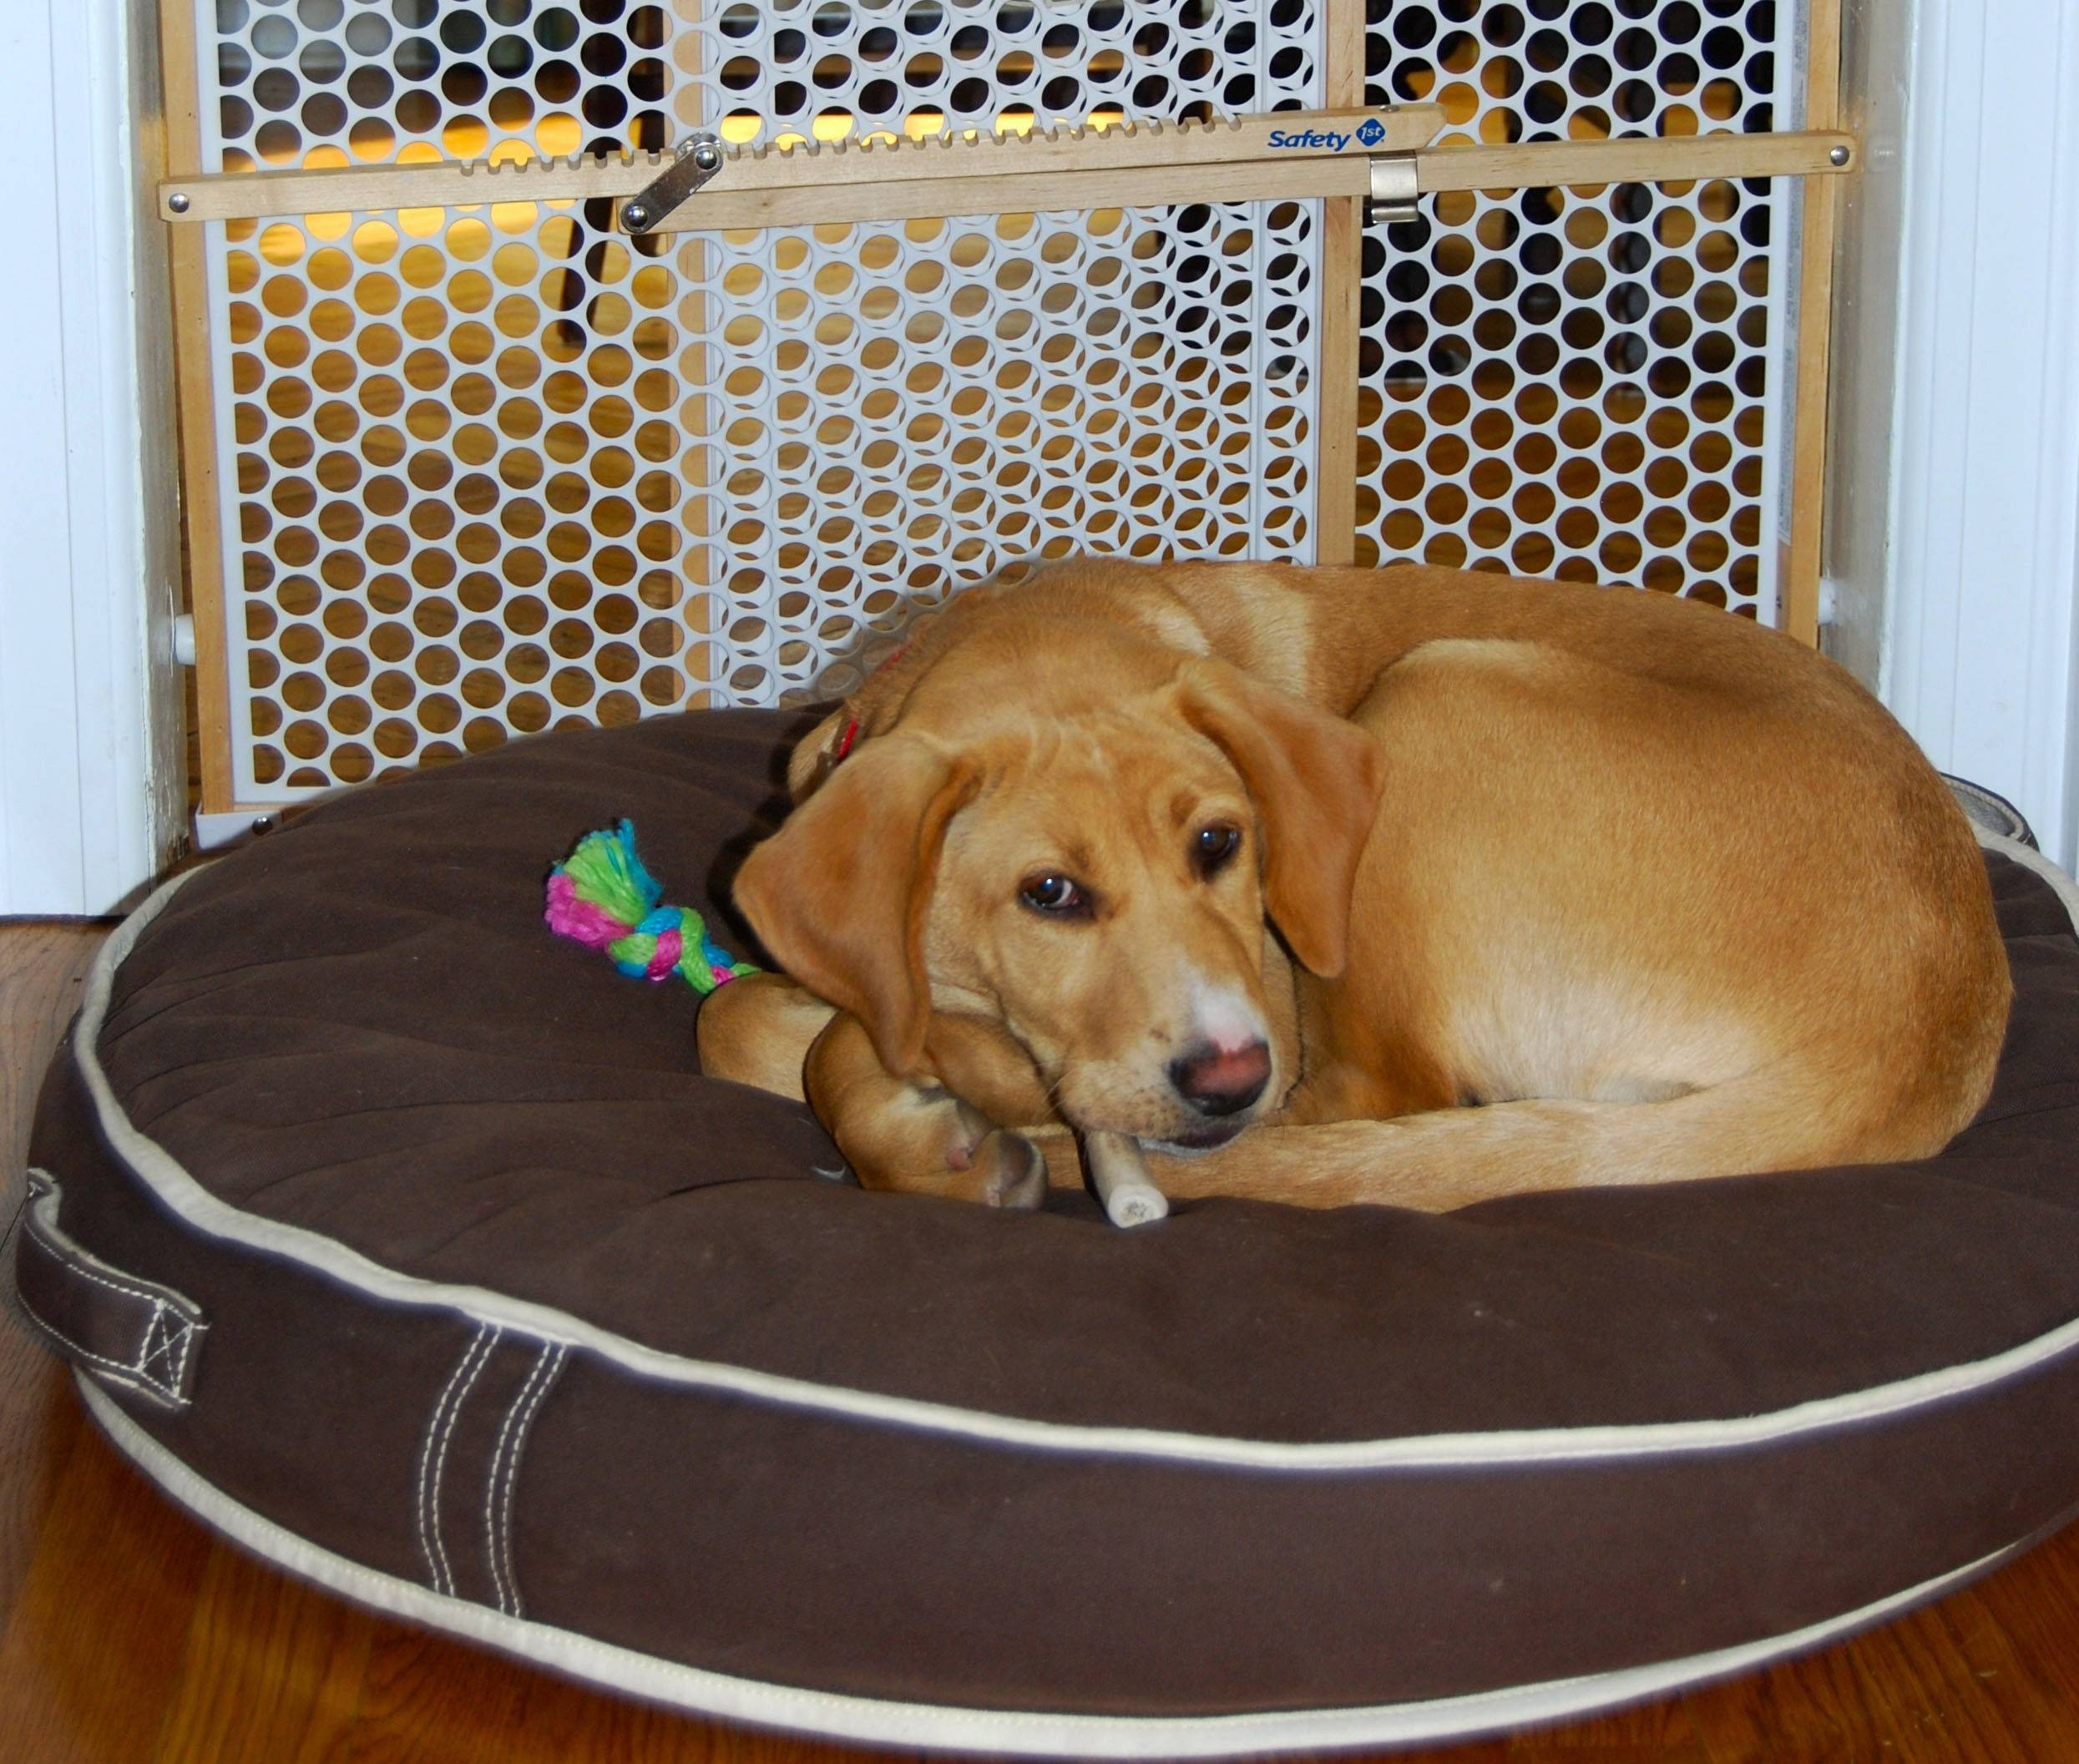 A puppy rests by a gate that prevents her from entering a formal dining room where there are fragile items and furniture with sentimental value. Experts advise puppy-owners to gate off rooms where they don't want their puppy to roam.